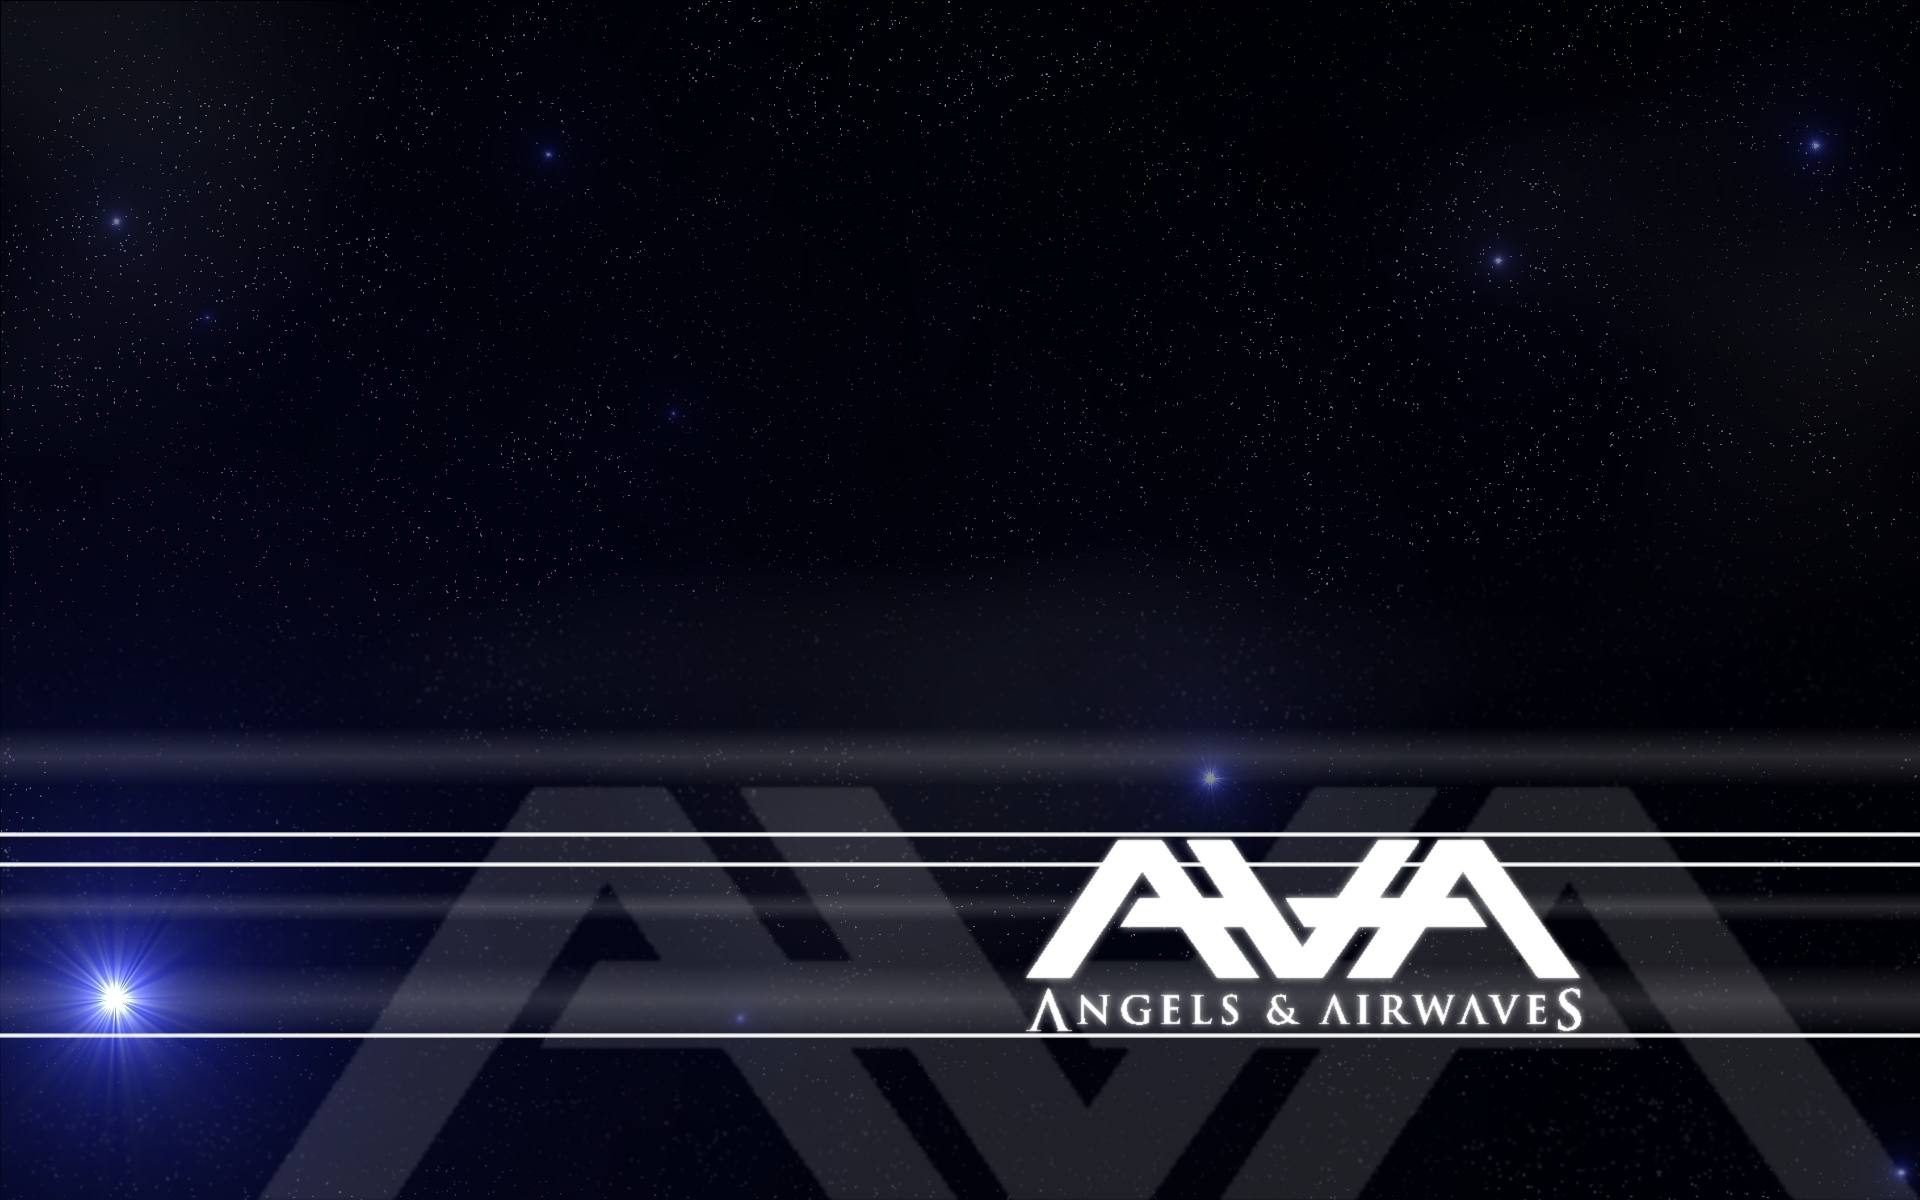 angels and airwaves wallpapers, angels and airwaves images for